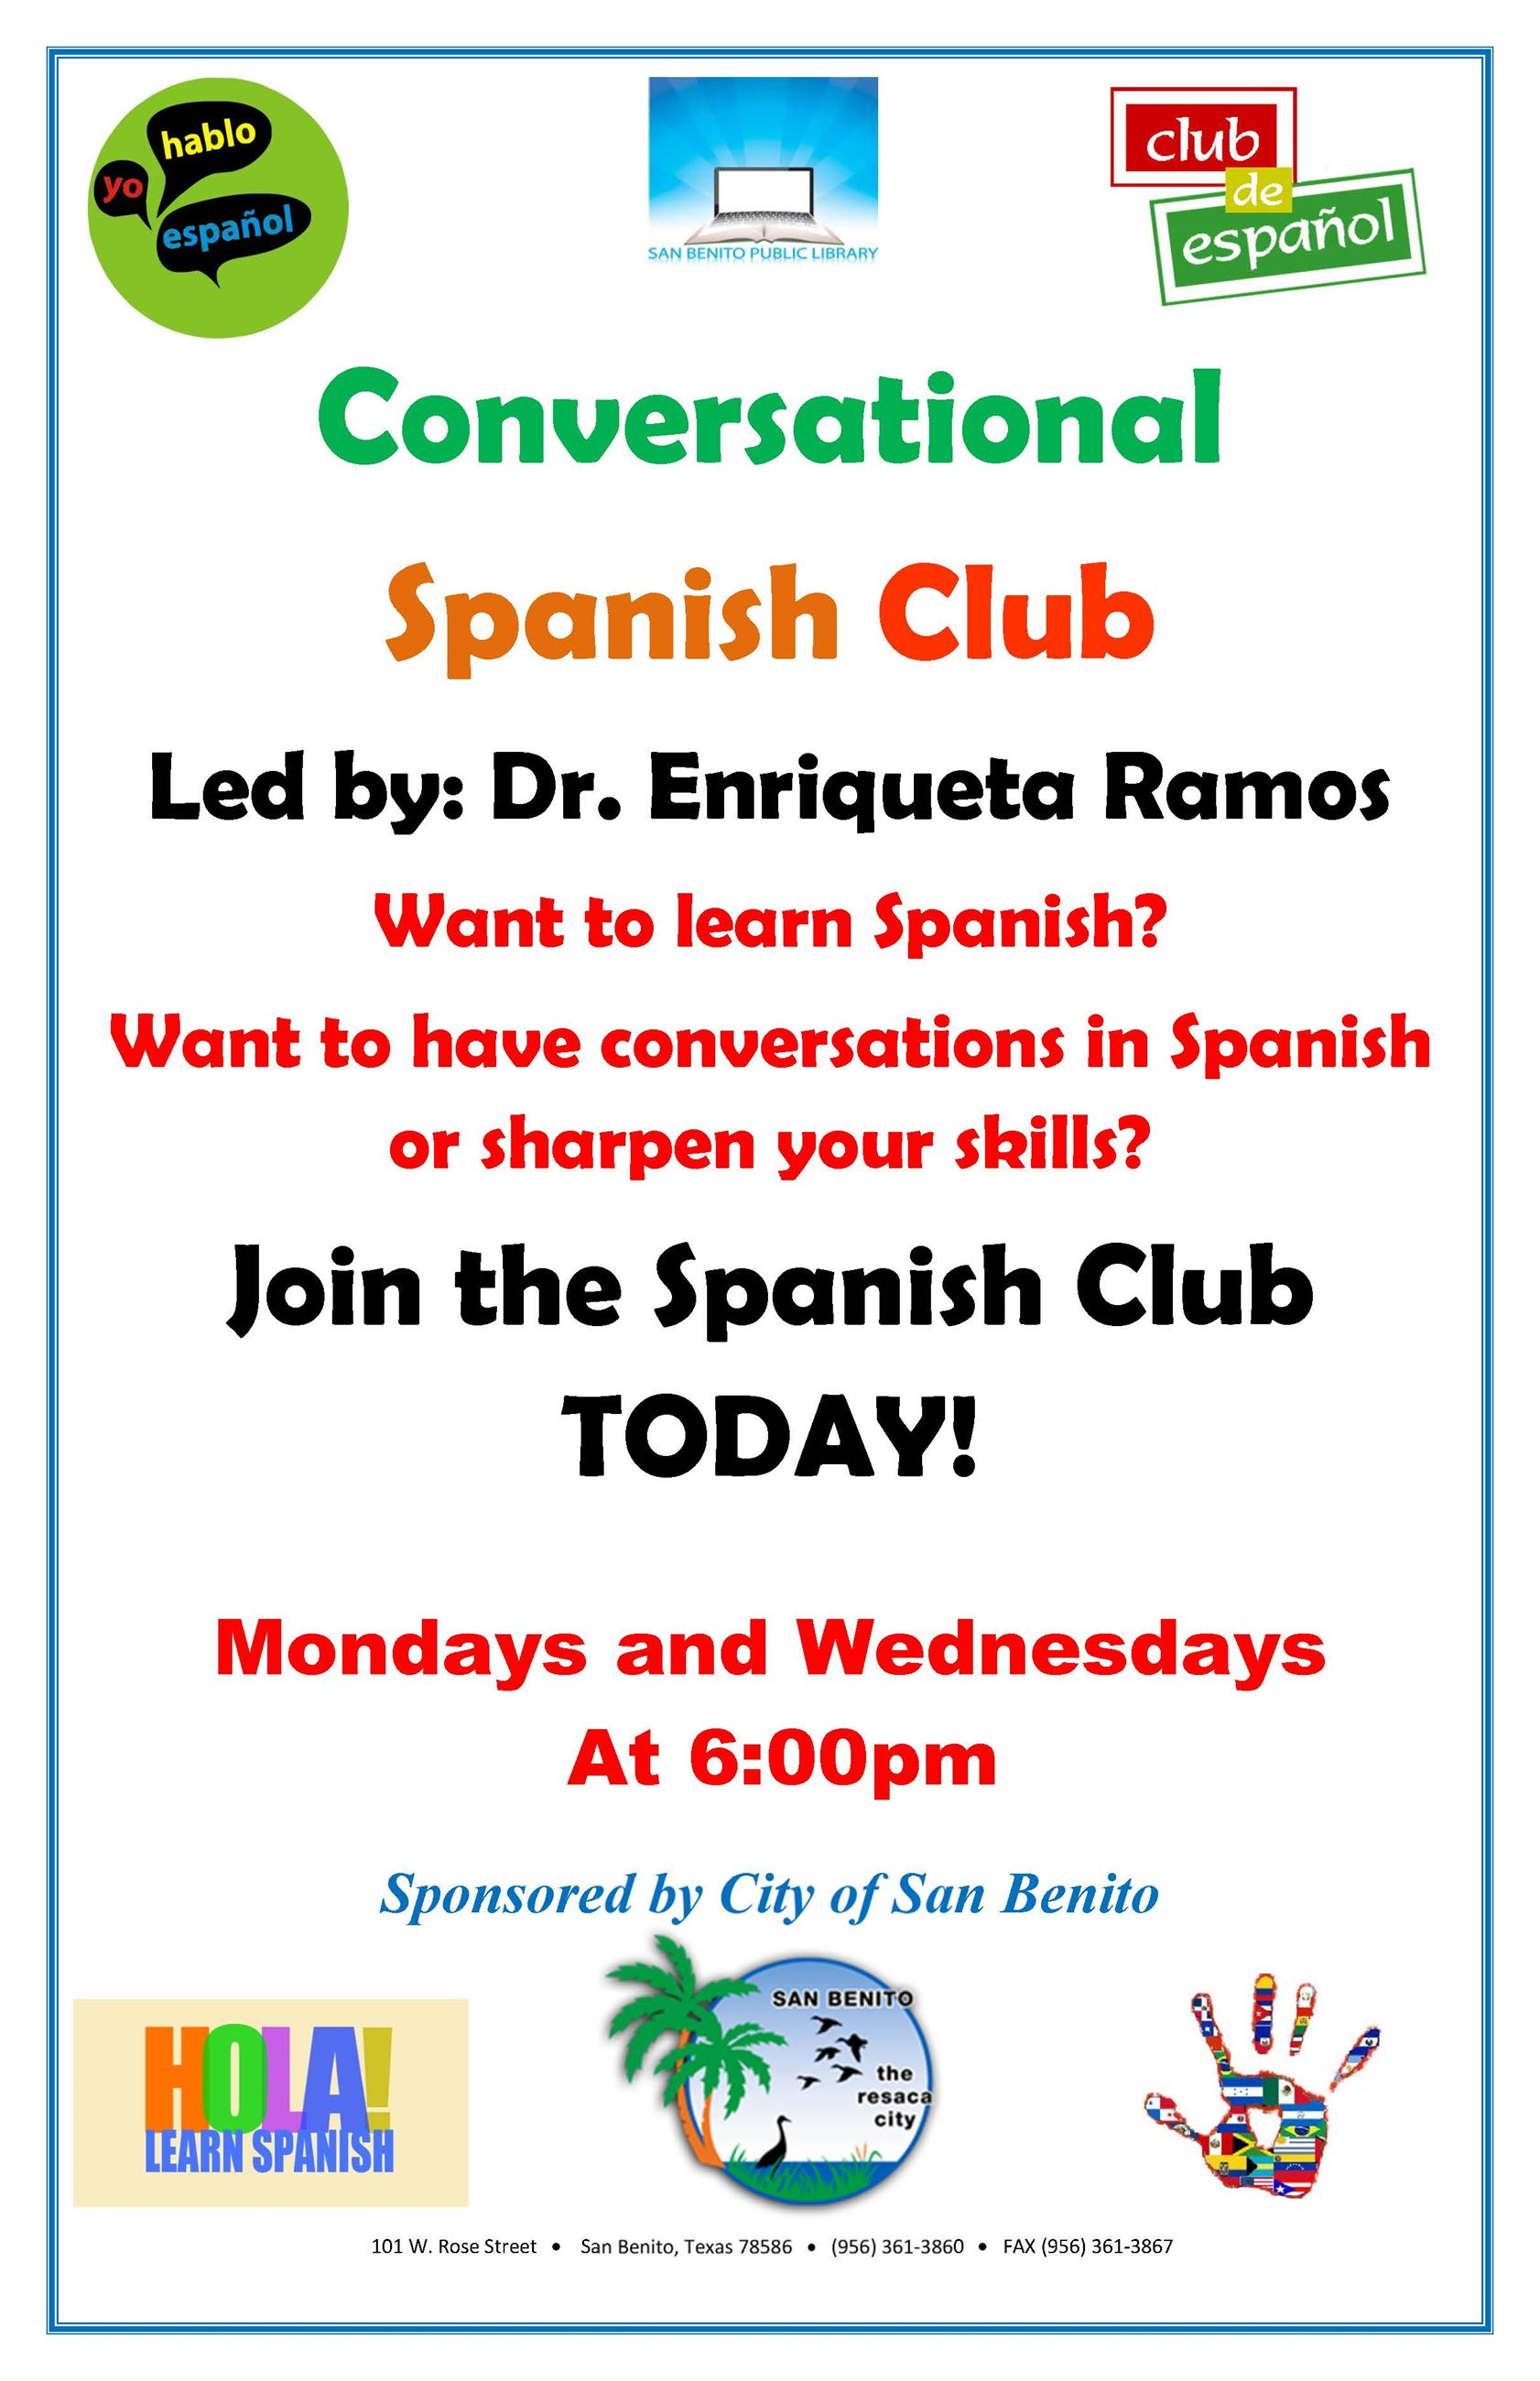 Conversational Spanish Club Flyer